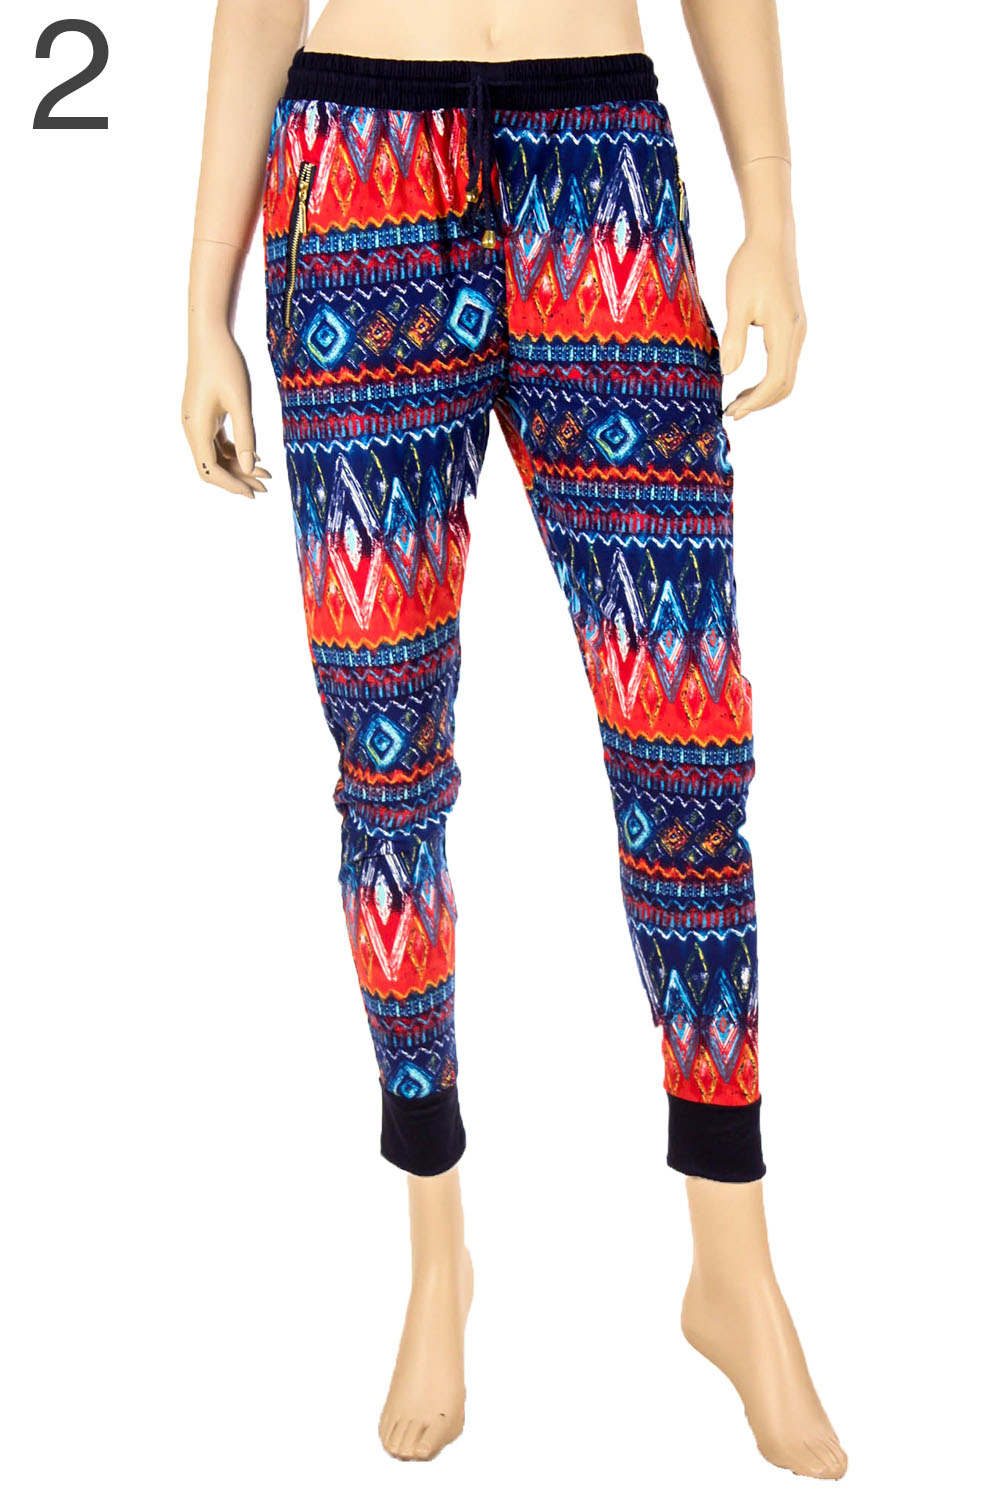 Find great deals on eBay for harem joggers women. Shop with confidence.